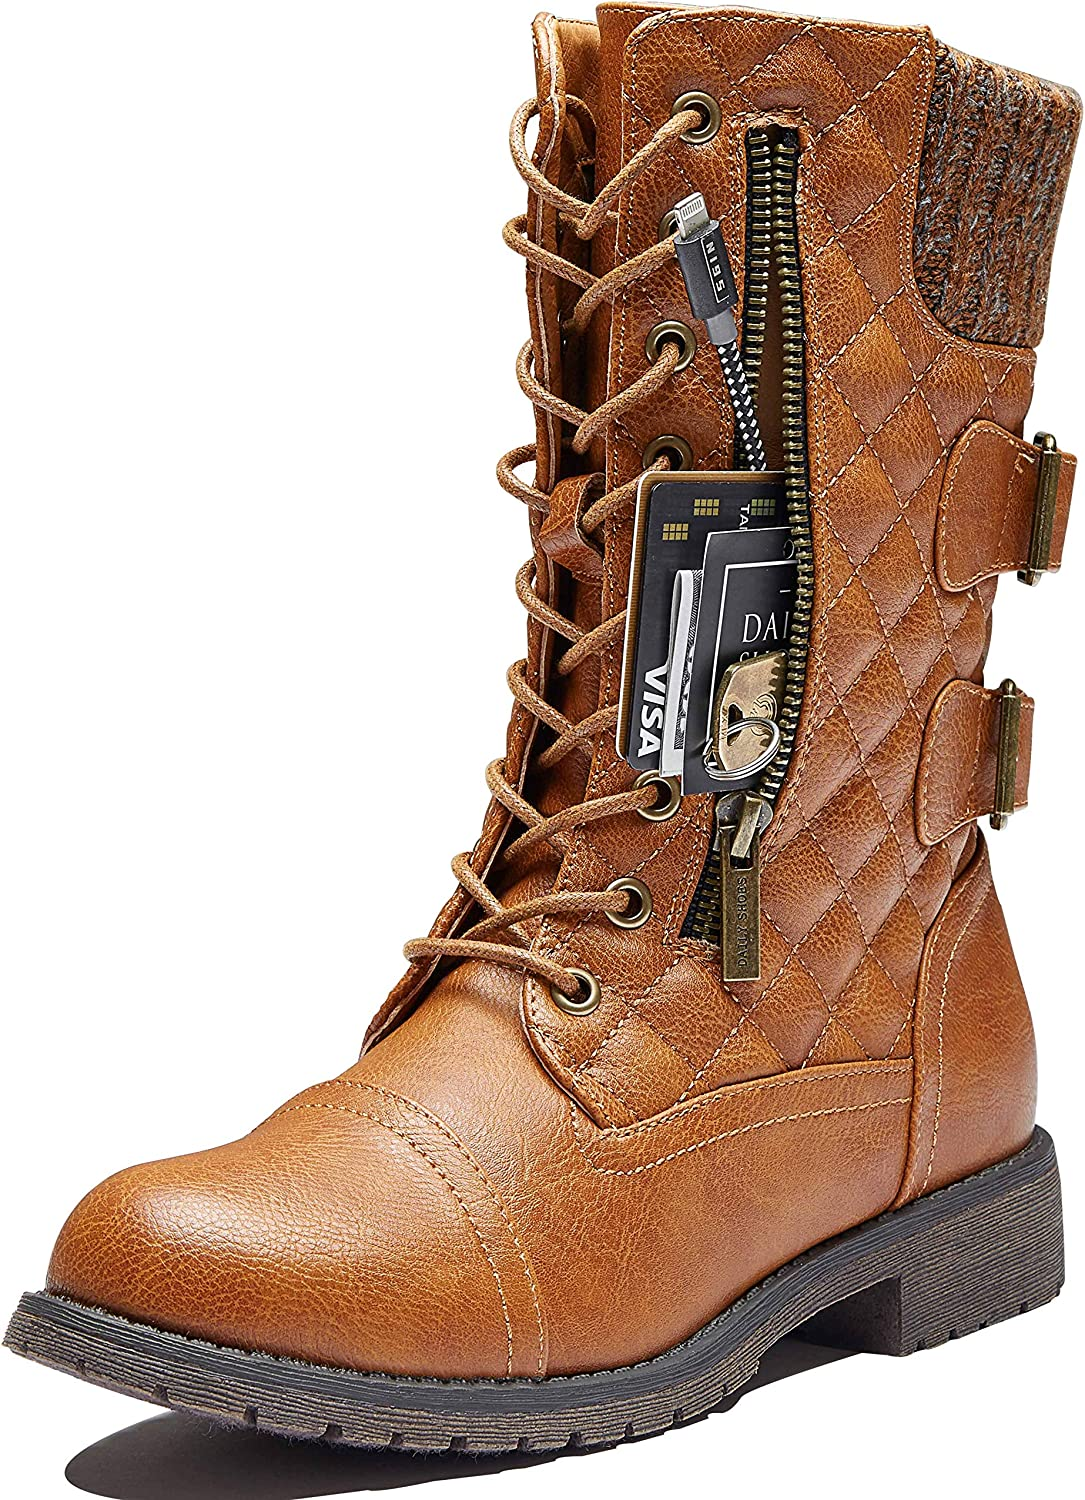 DailyShoes Women's Military Lace Up Buckle Combat Boots Mid Knee High Exclusive Credit Card Pocket Front Studded Booties